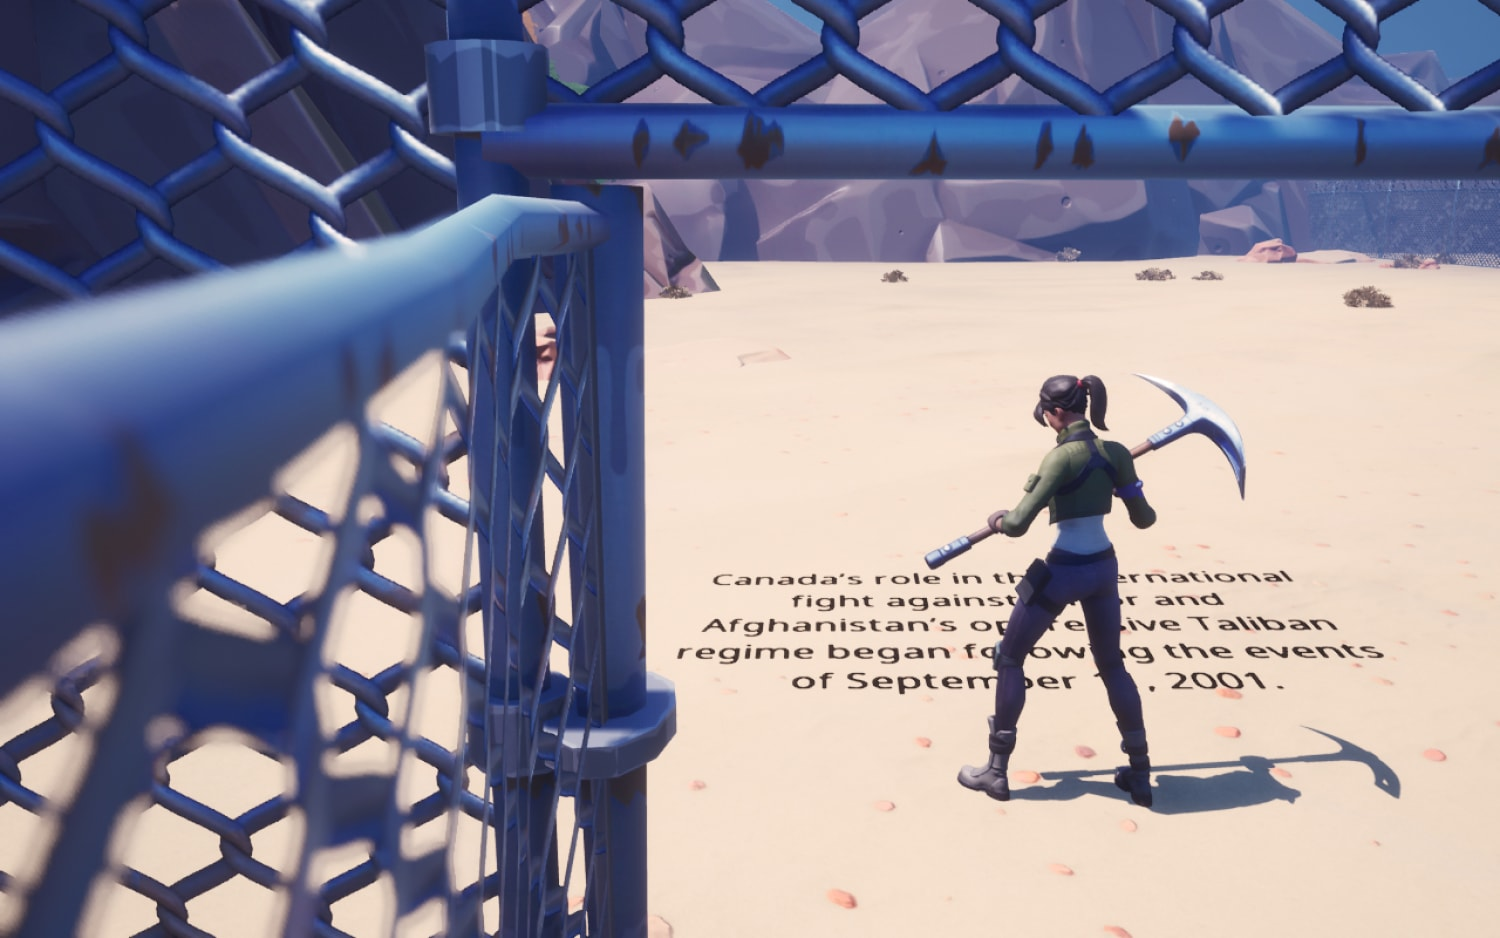 Animated image of a metal gate with door open. Women in the door holding a pick axe. Black writing scrolled underneath her.